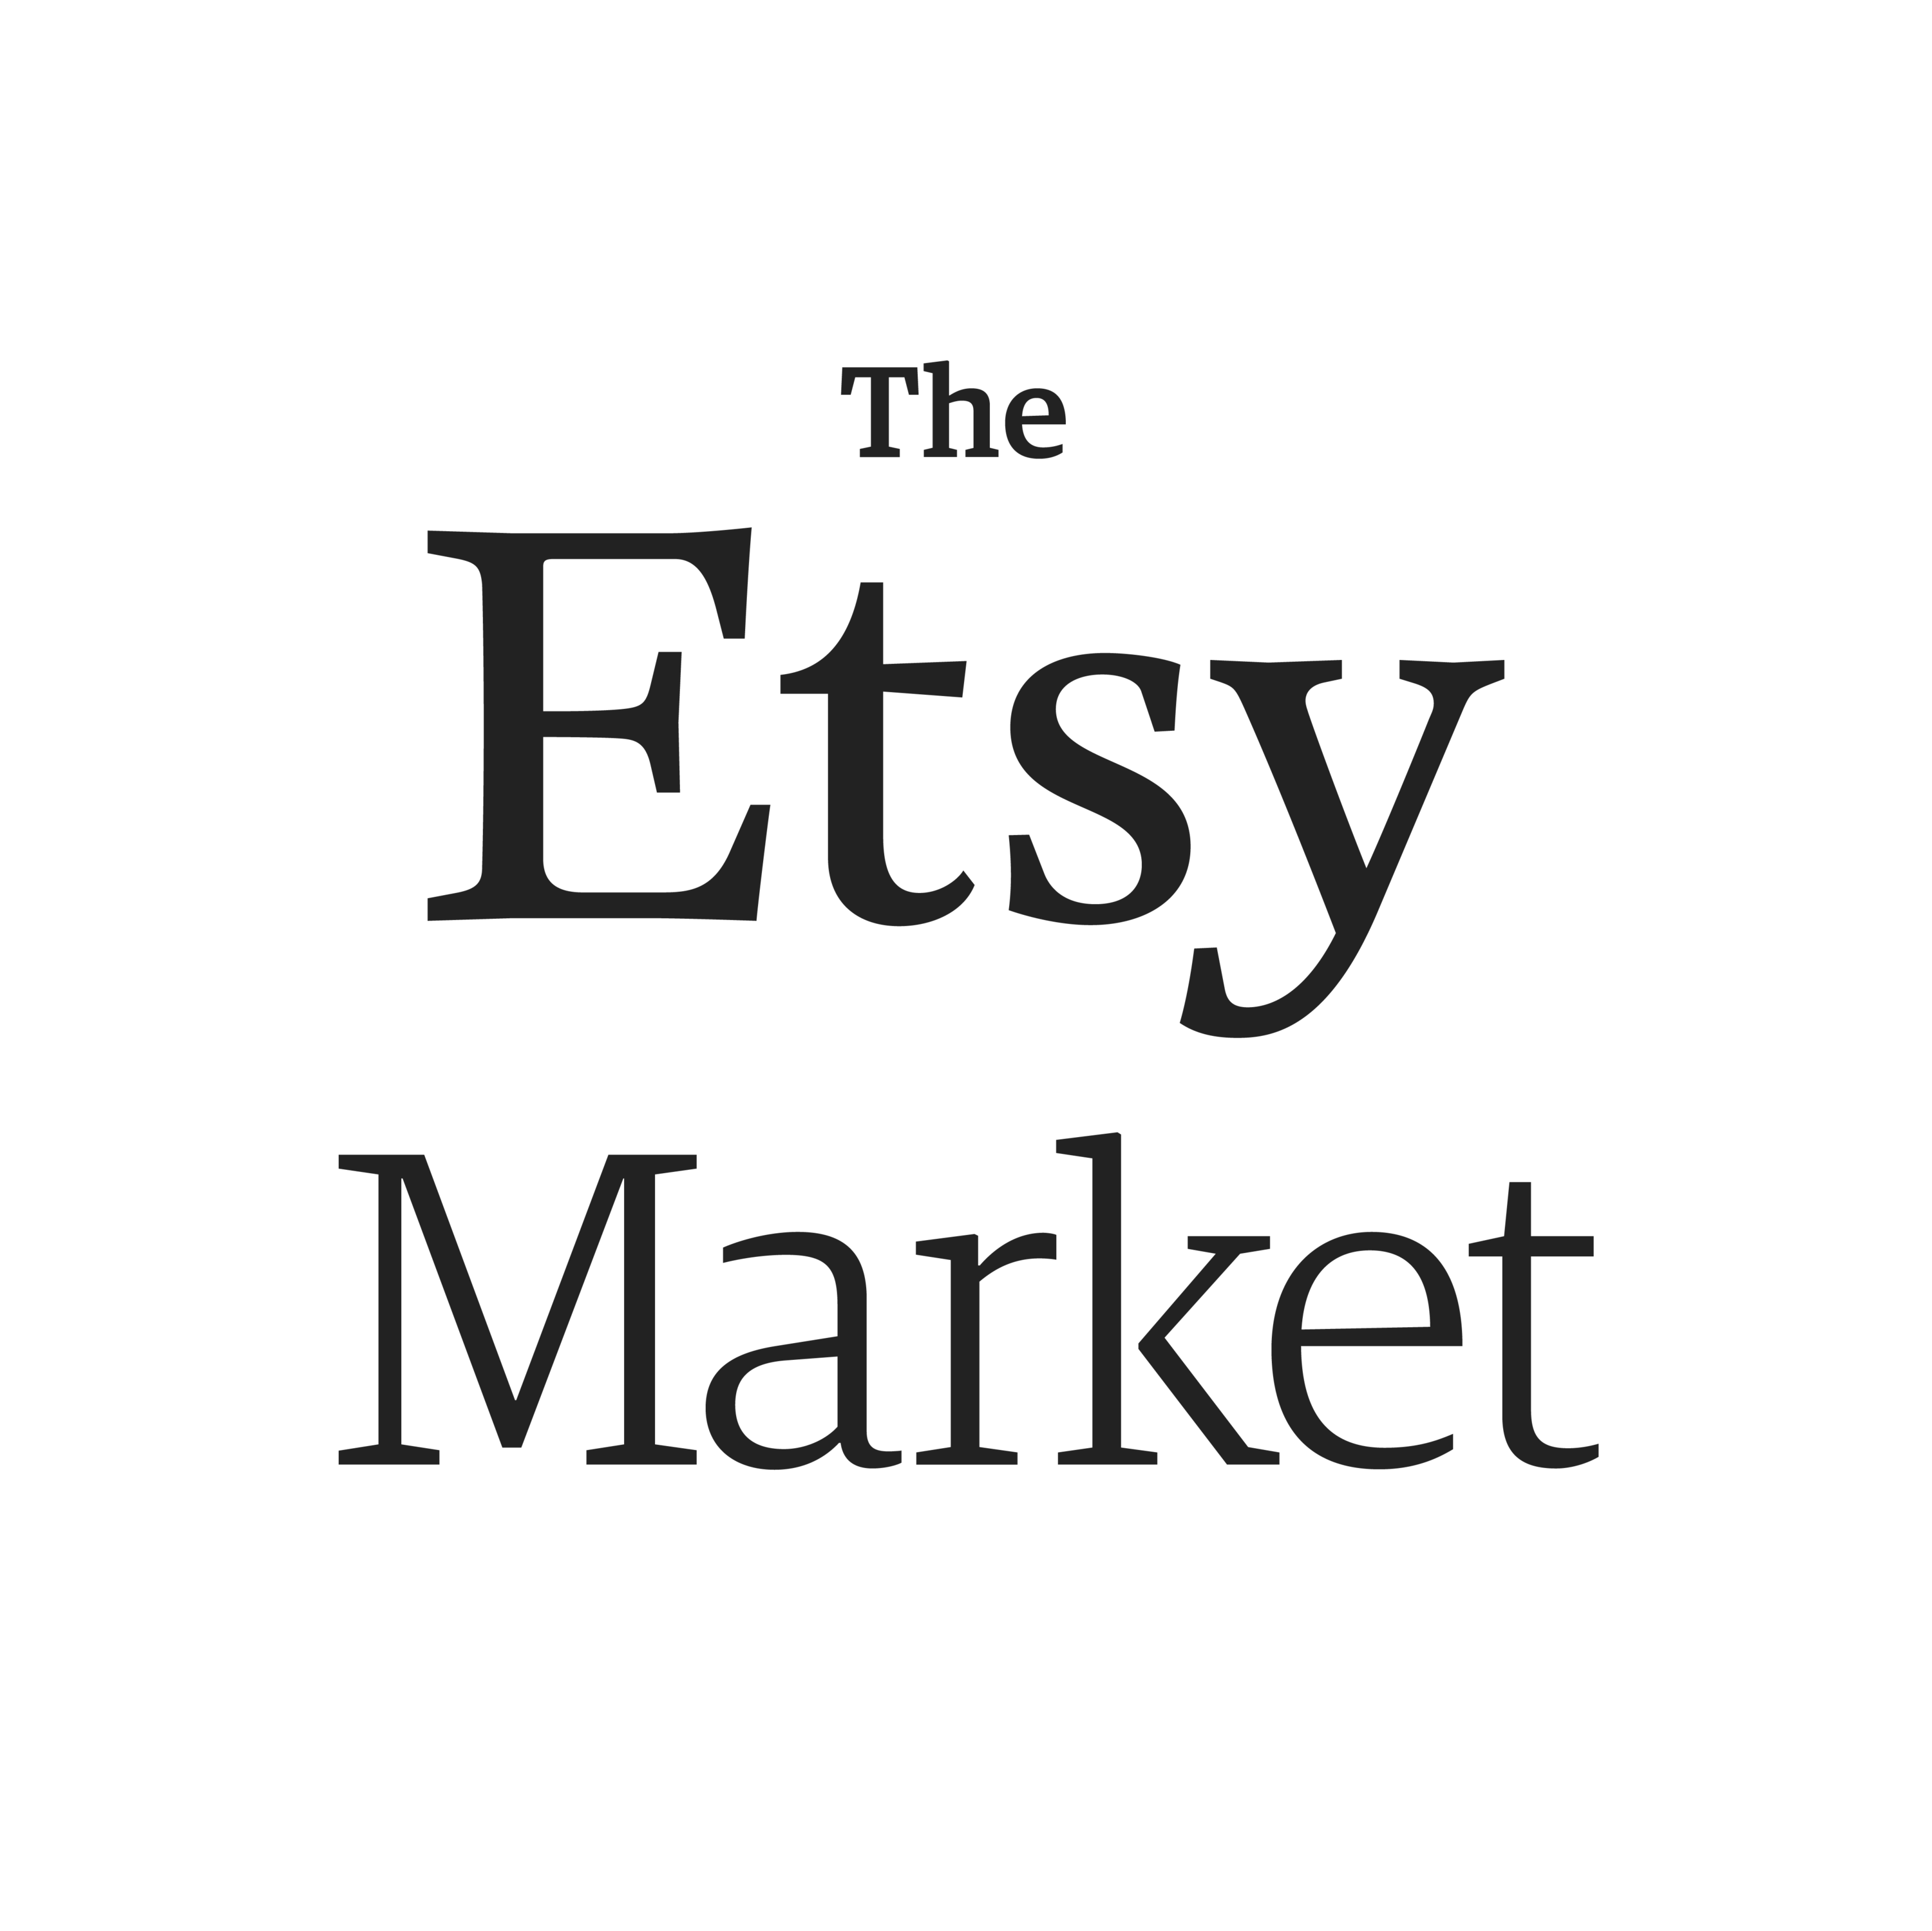 The Etsy Market